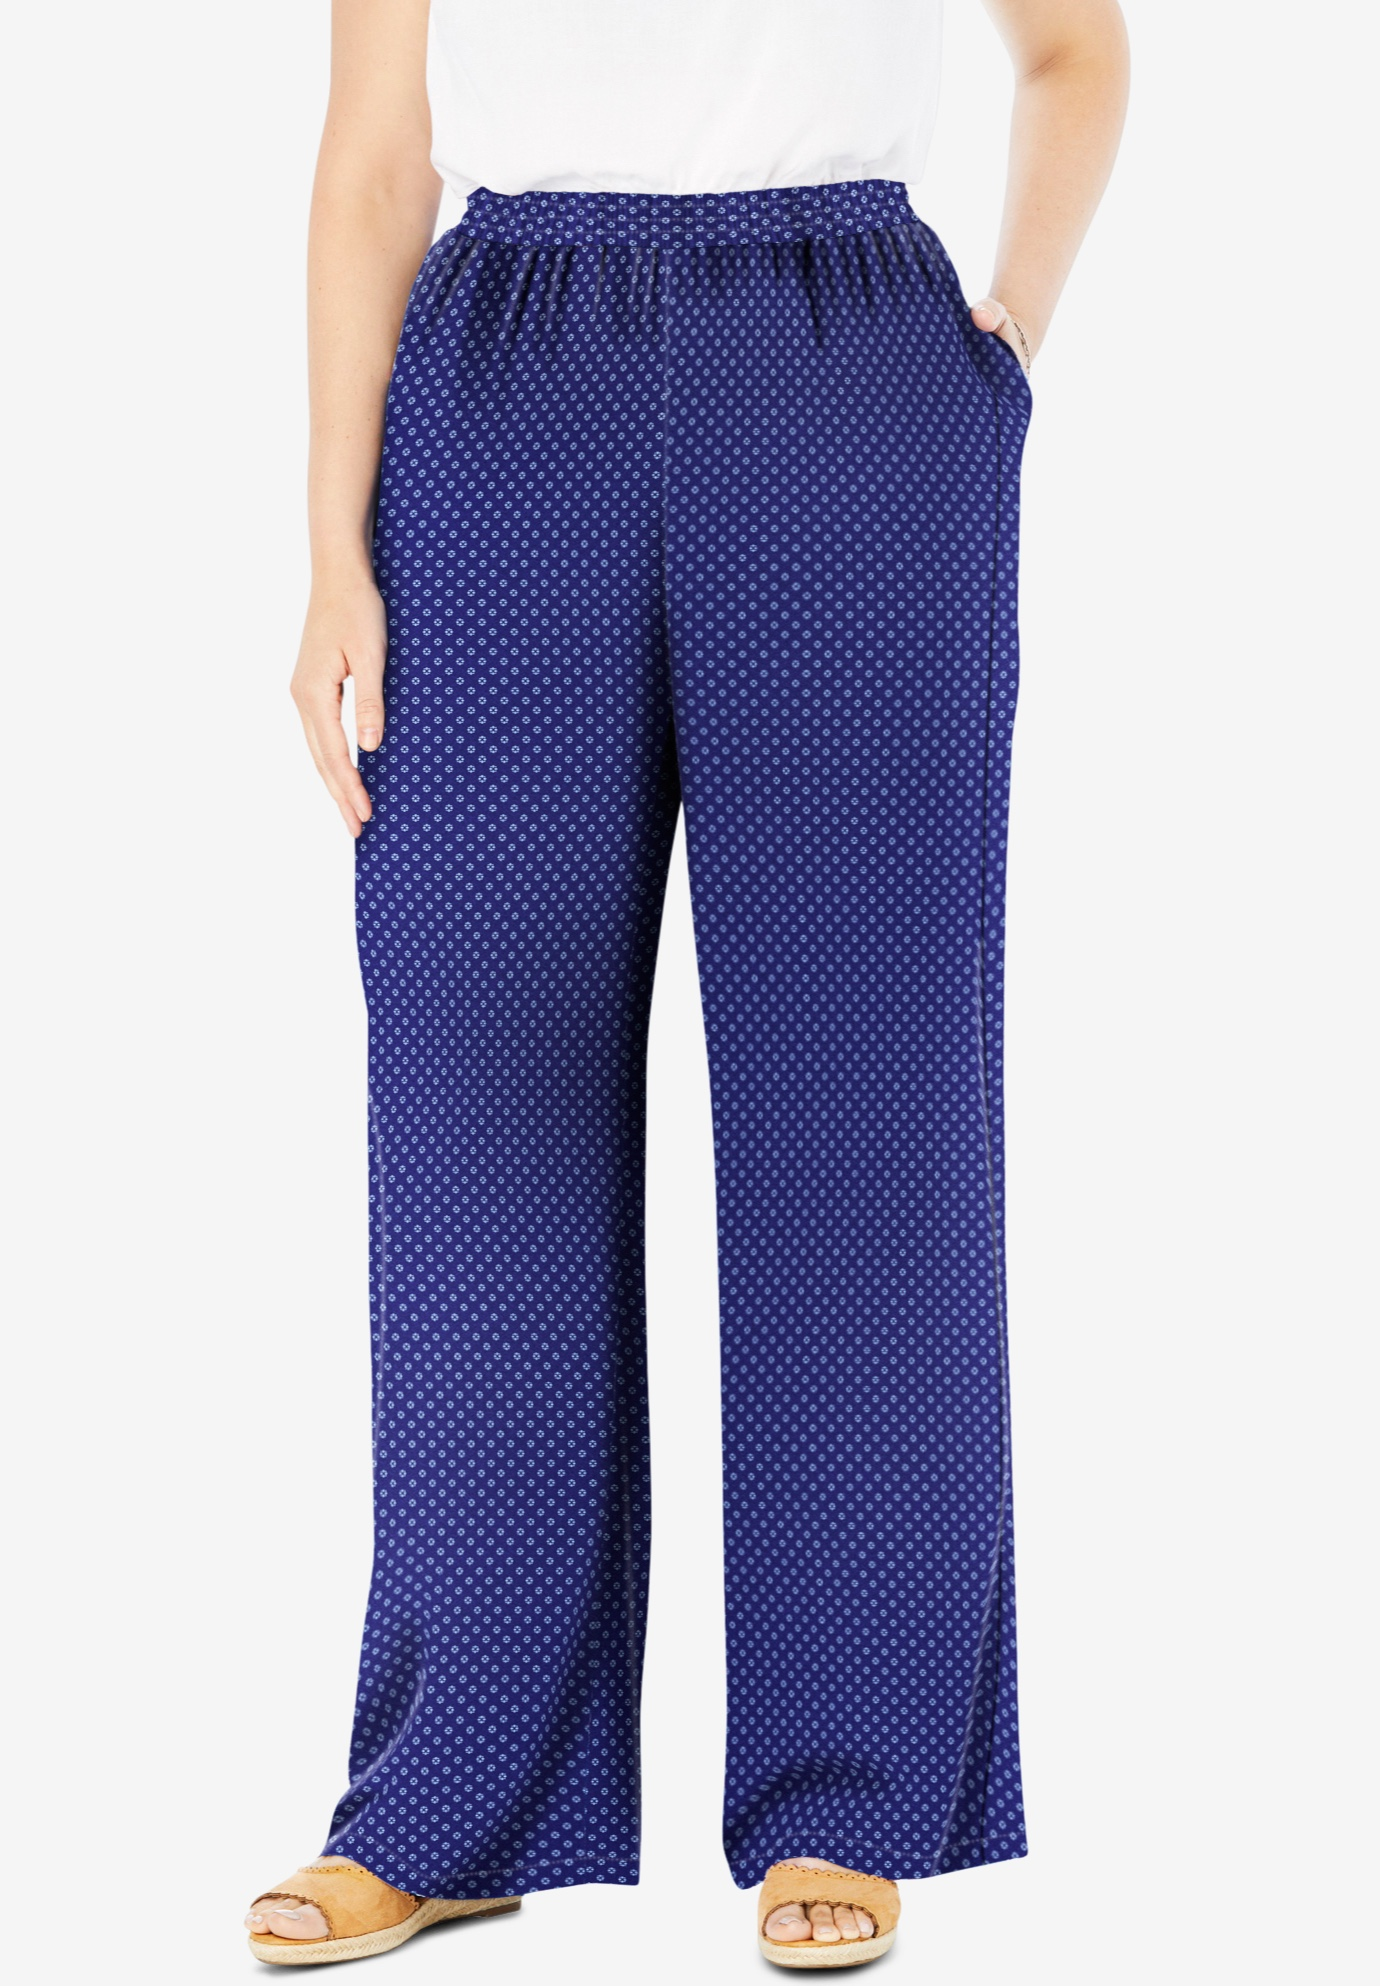 Pull-On Elastic Waist Soft Pants,